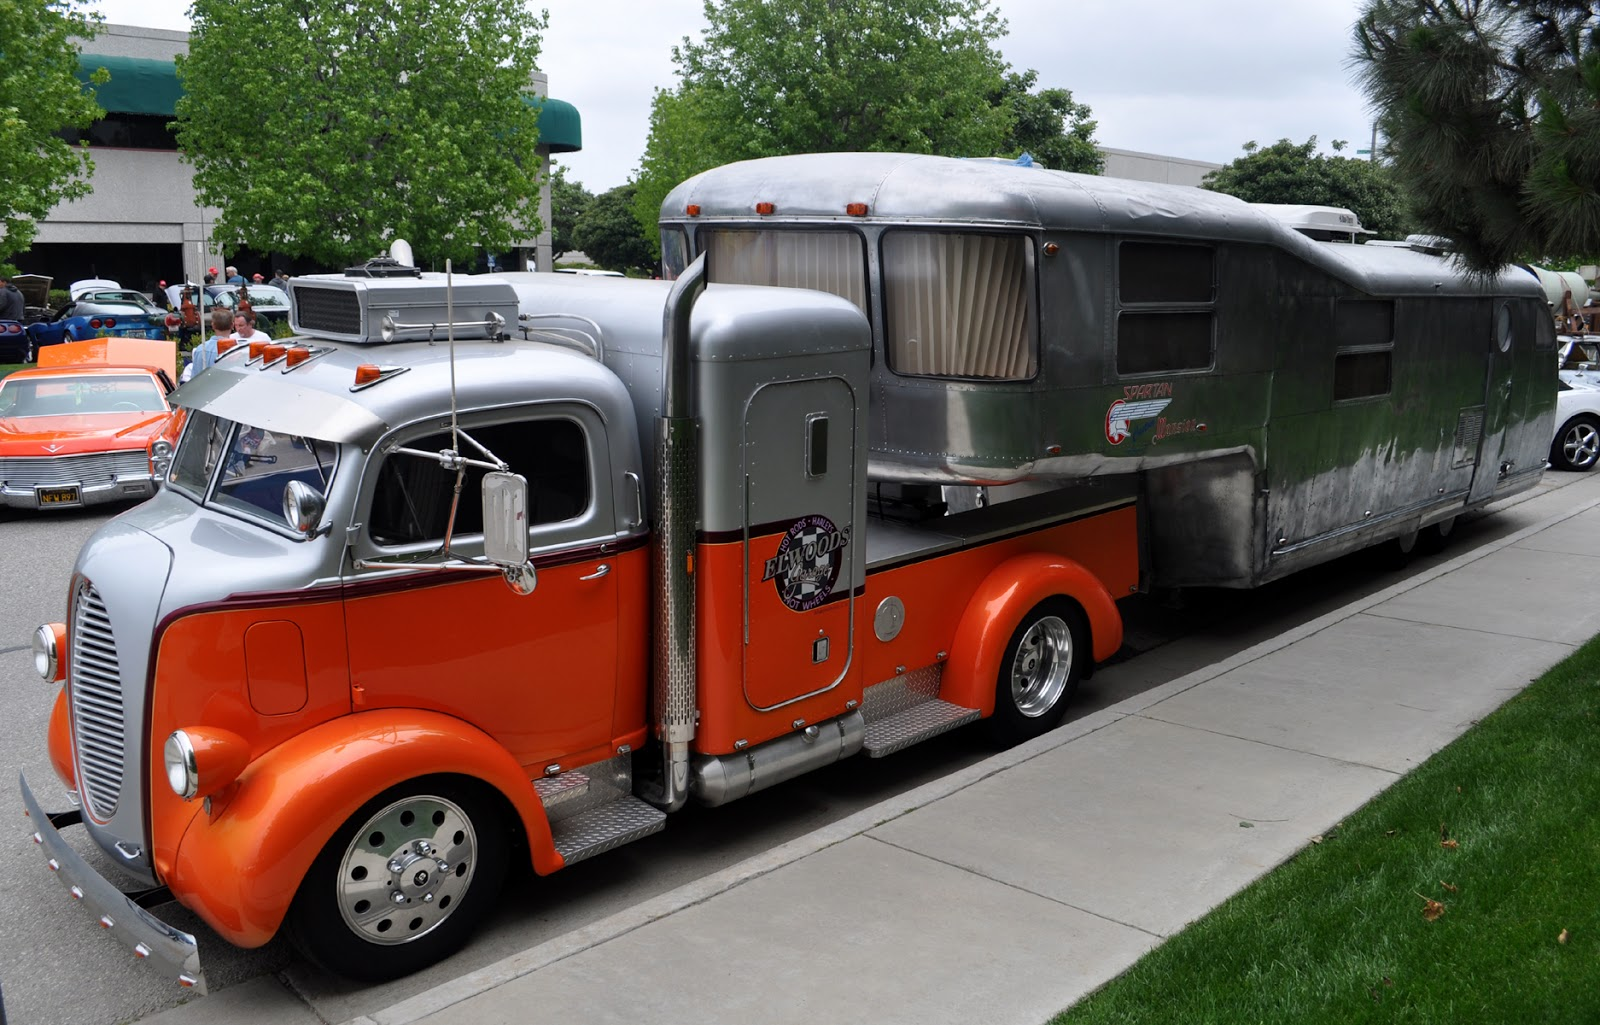 Pulling Trucks For Sale On Craigslist >> Just A Car Guy: Most impressive hot rod truck and trailer I've seen in a while, the Elwoods ...